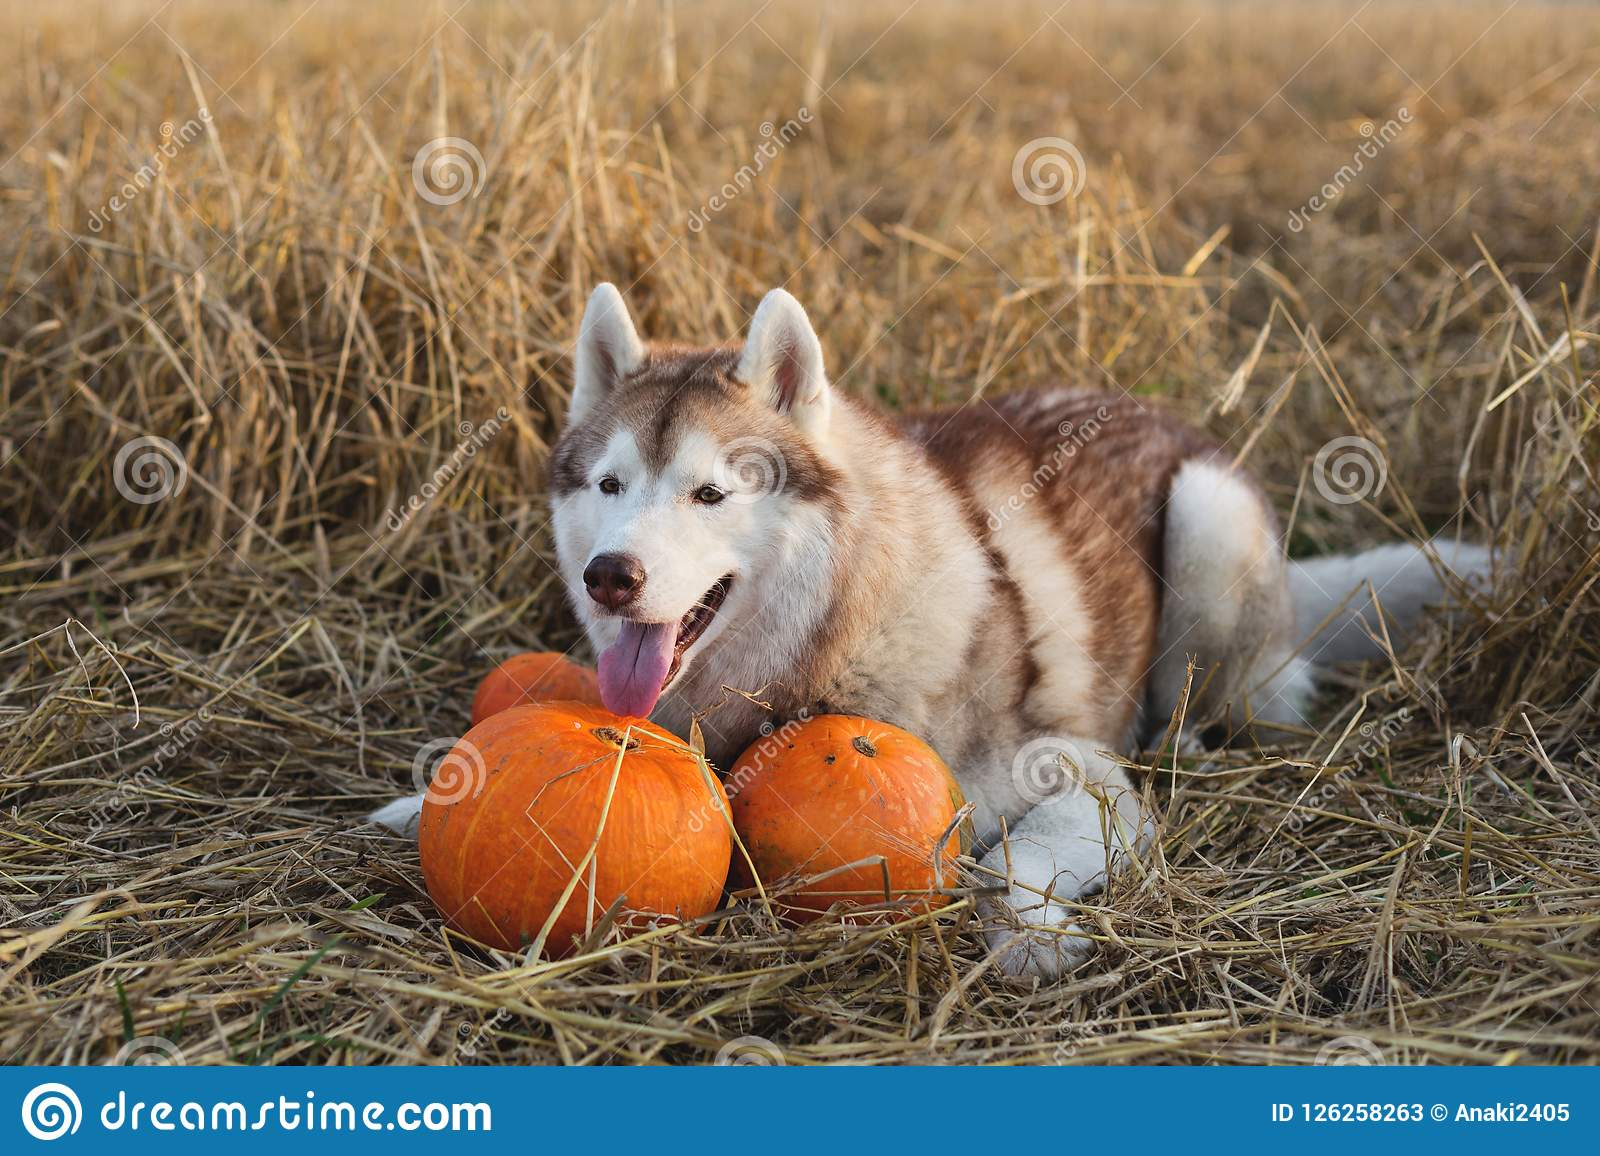 Portrait of happy dog breed siberian husky on the rye field background lying next to a pumpkin for Halloween